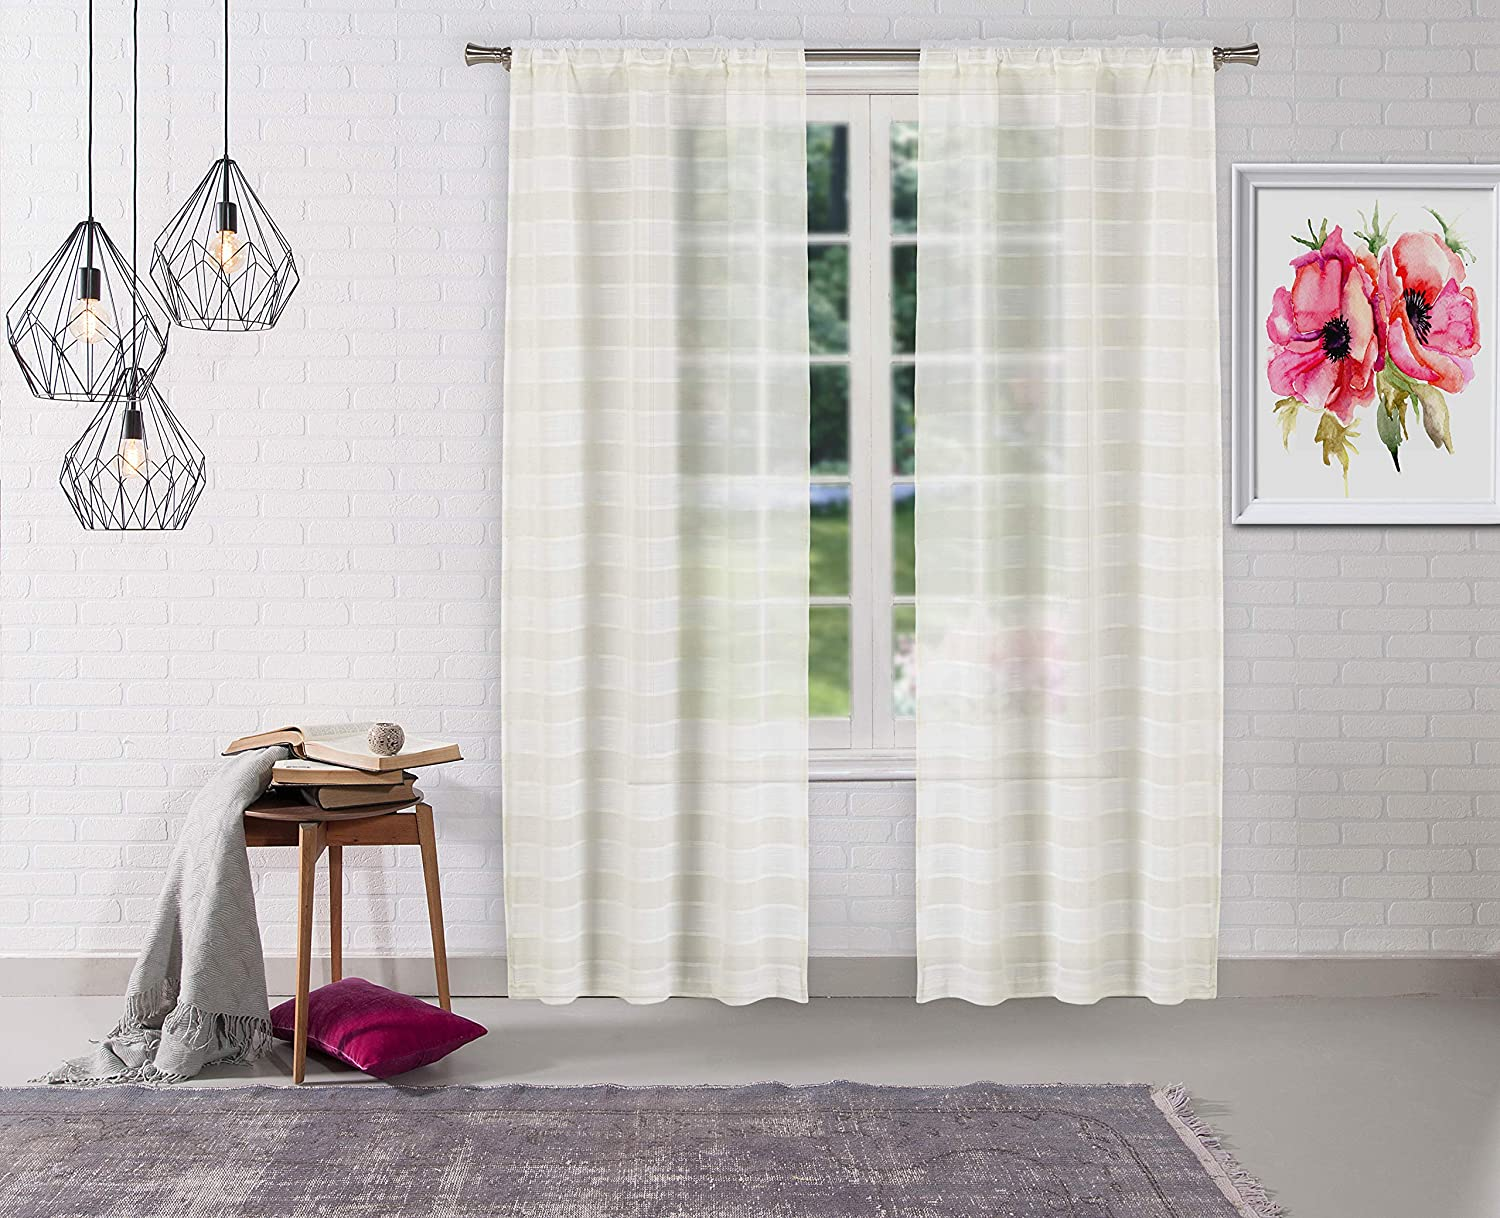 Home Maison Dakota Stripe Window Curtain, 37x96 (2 Pieces), Linen